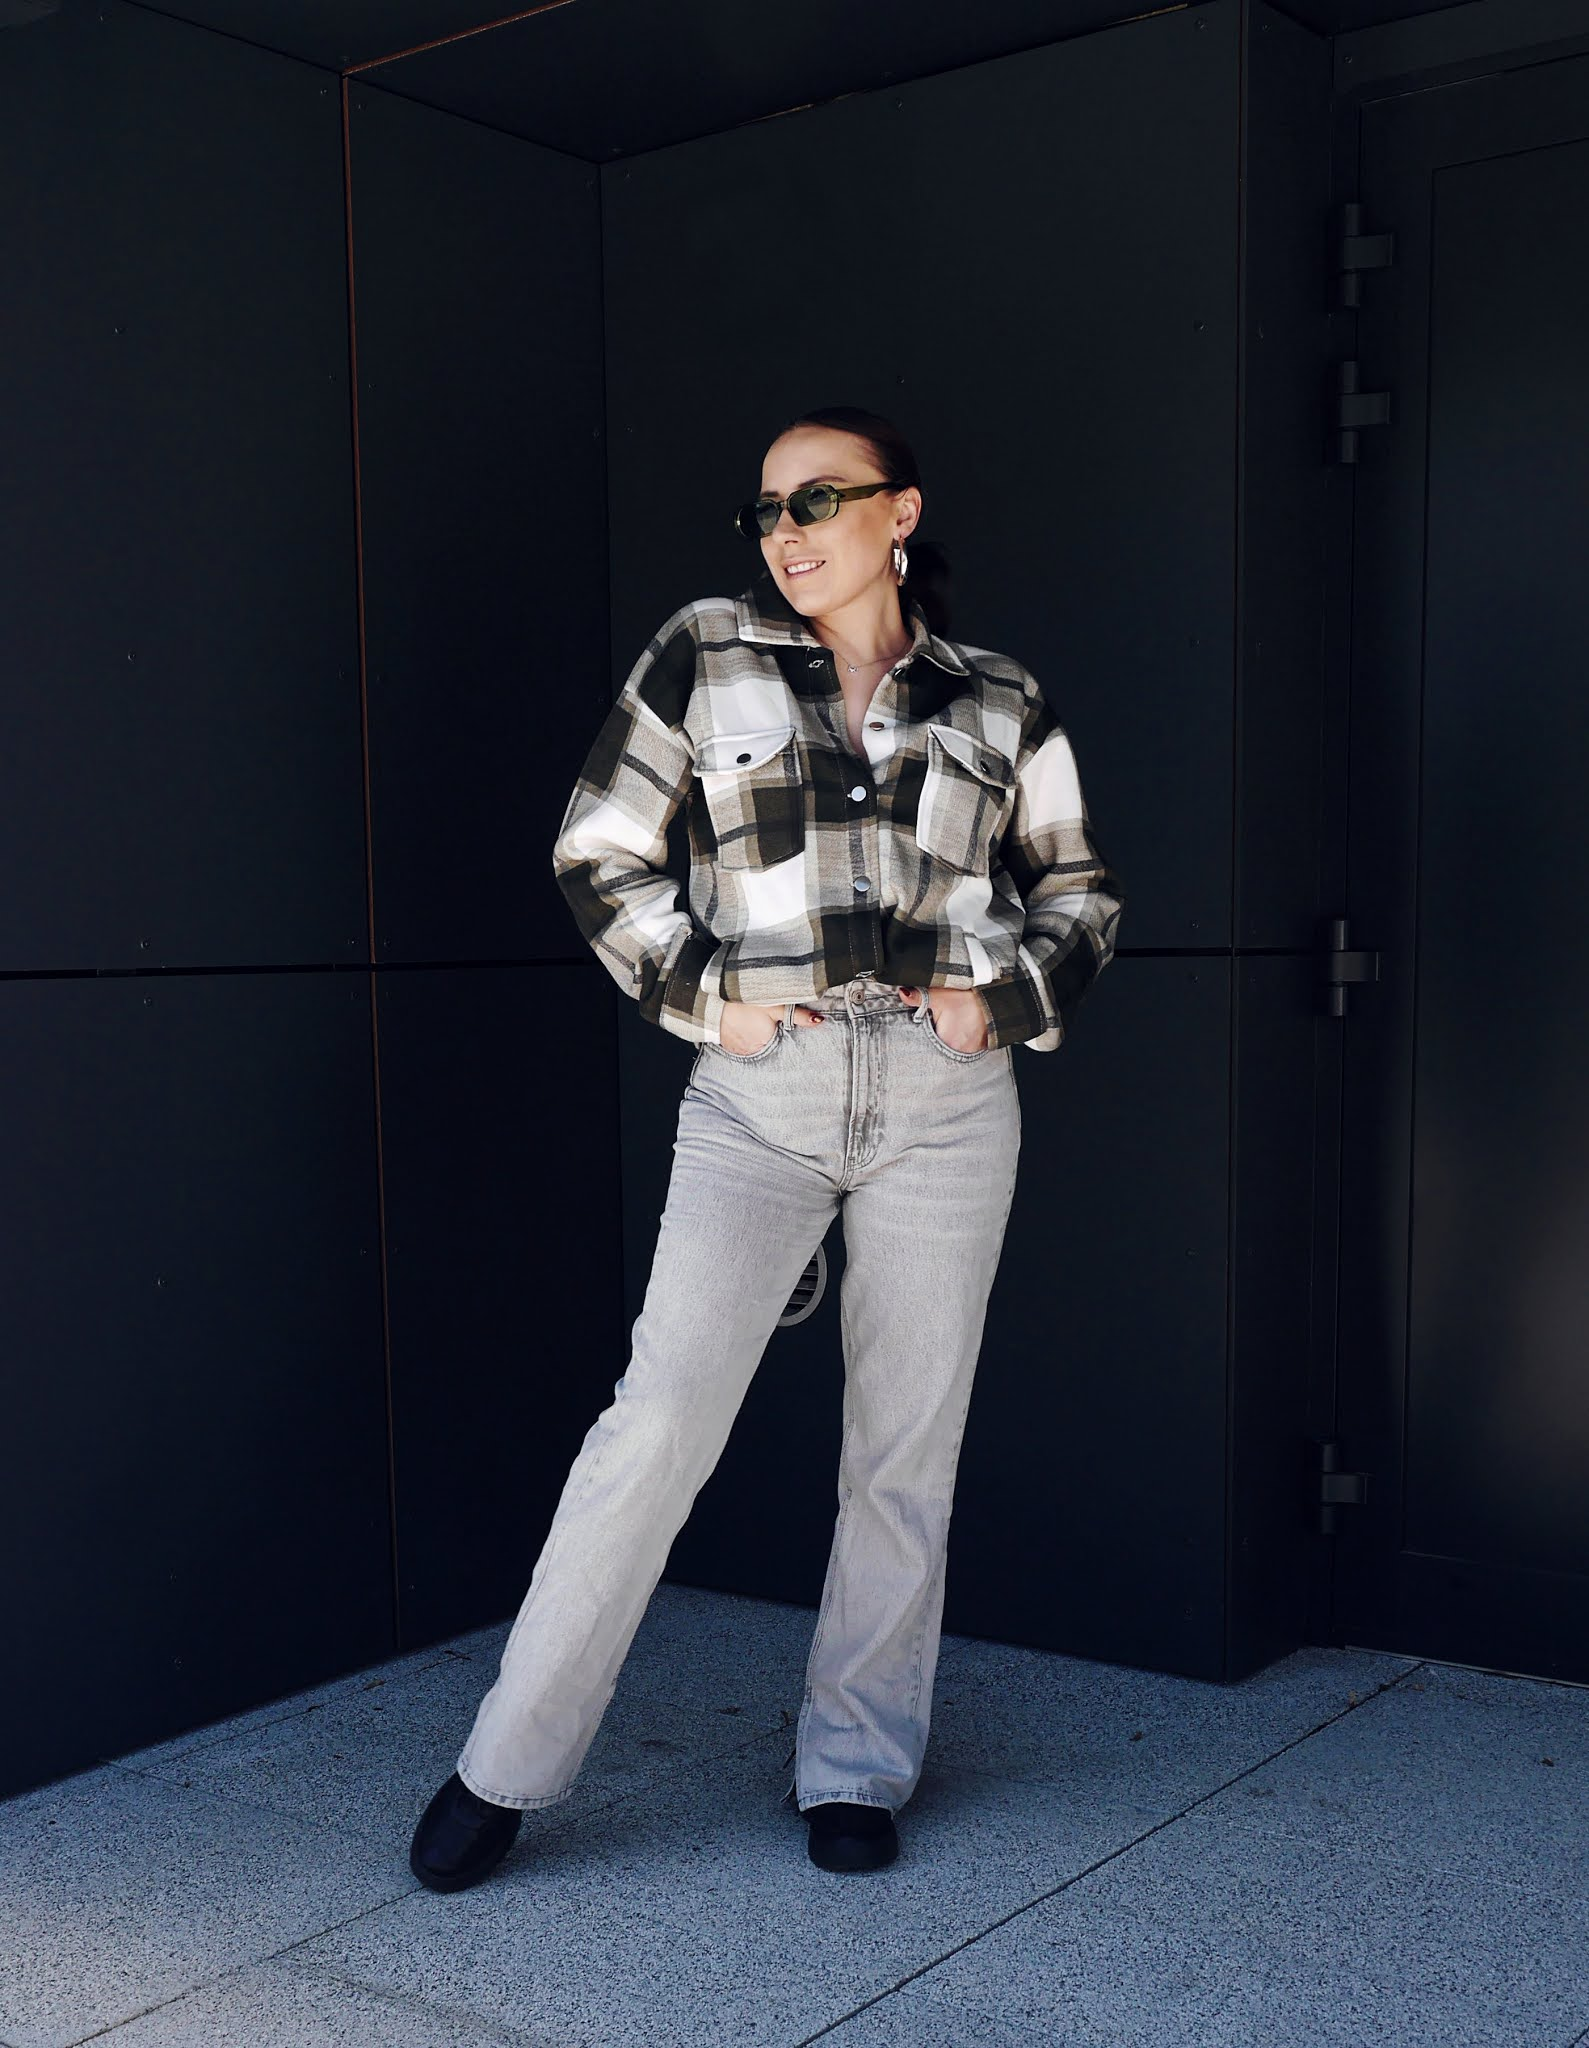 fashion blogger karyn dnim pants gray plaid shirt femme luxe green sunglasses aliexpres black sneakers sporty shoes bonprix ootd outfit look spring mood